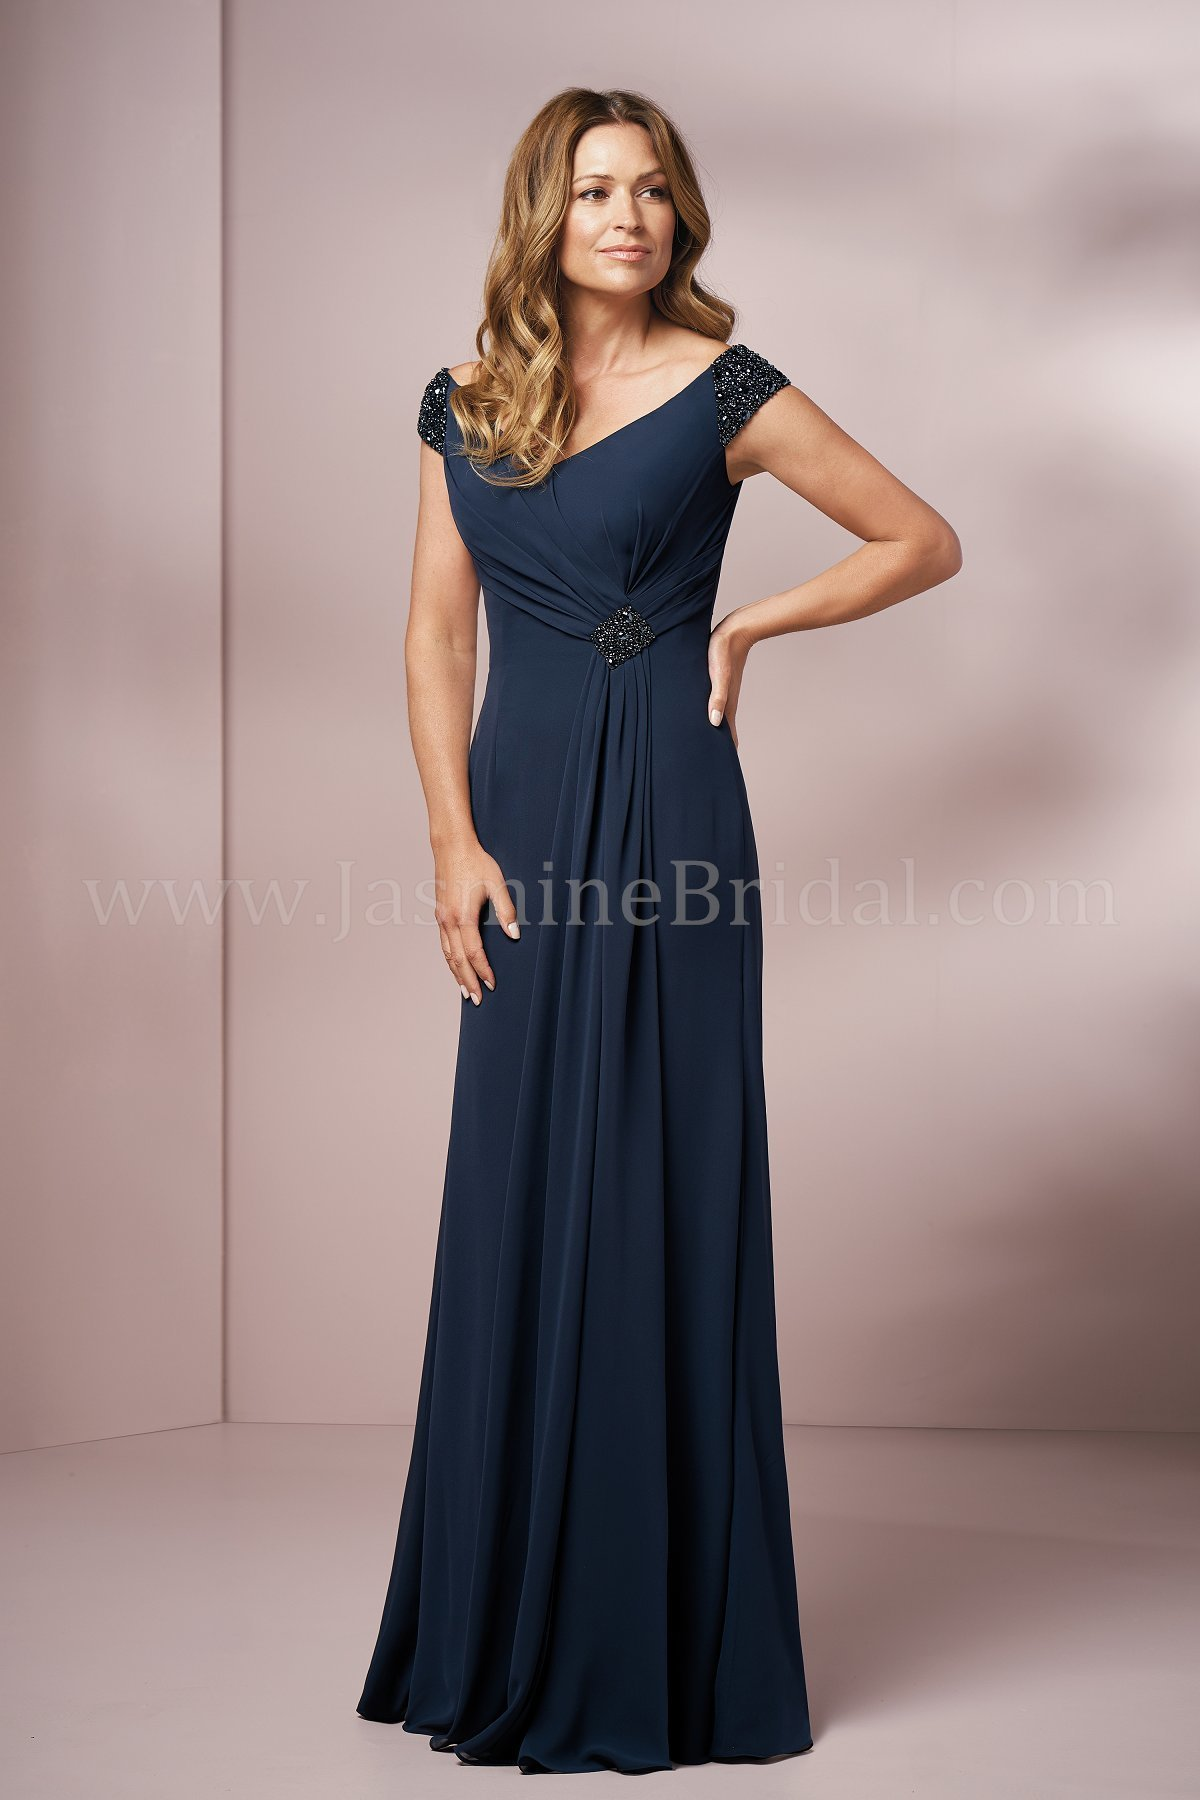 mother-of-the-bride-dresses-J205003-F